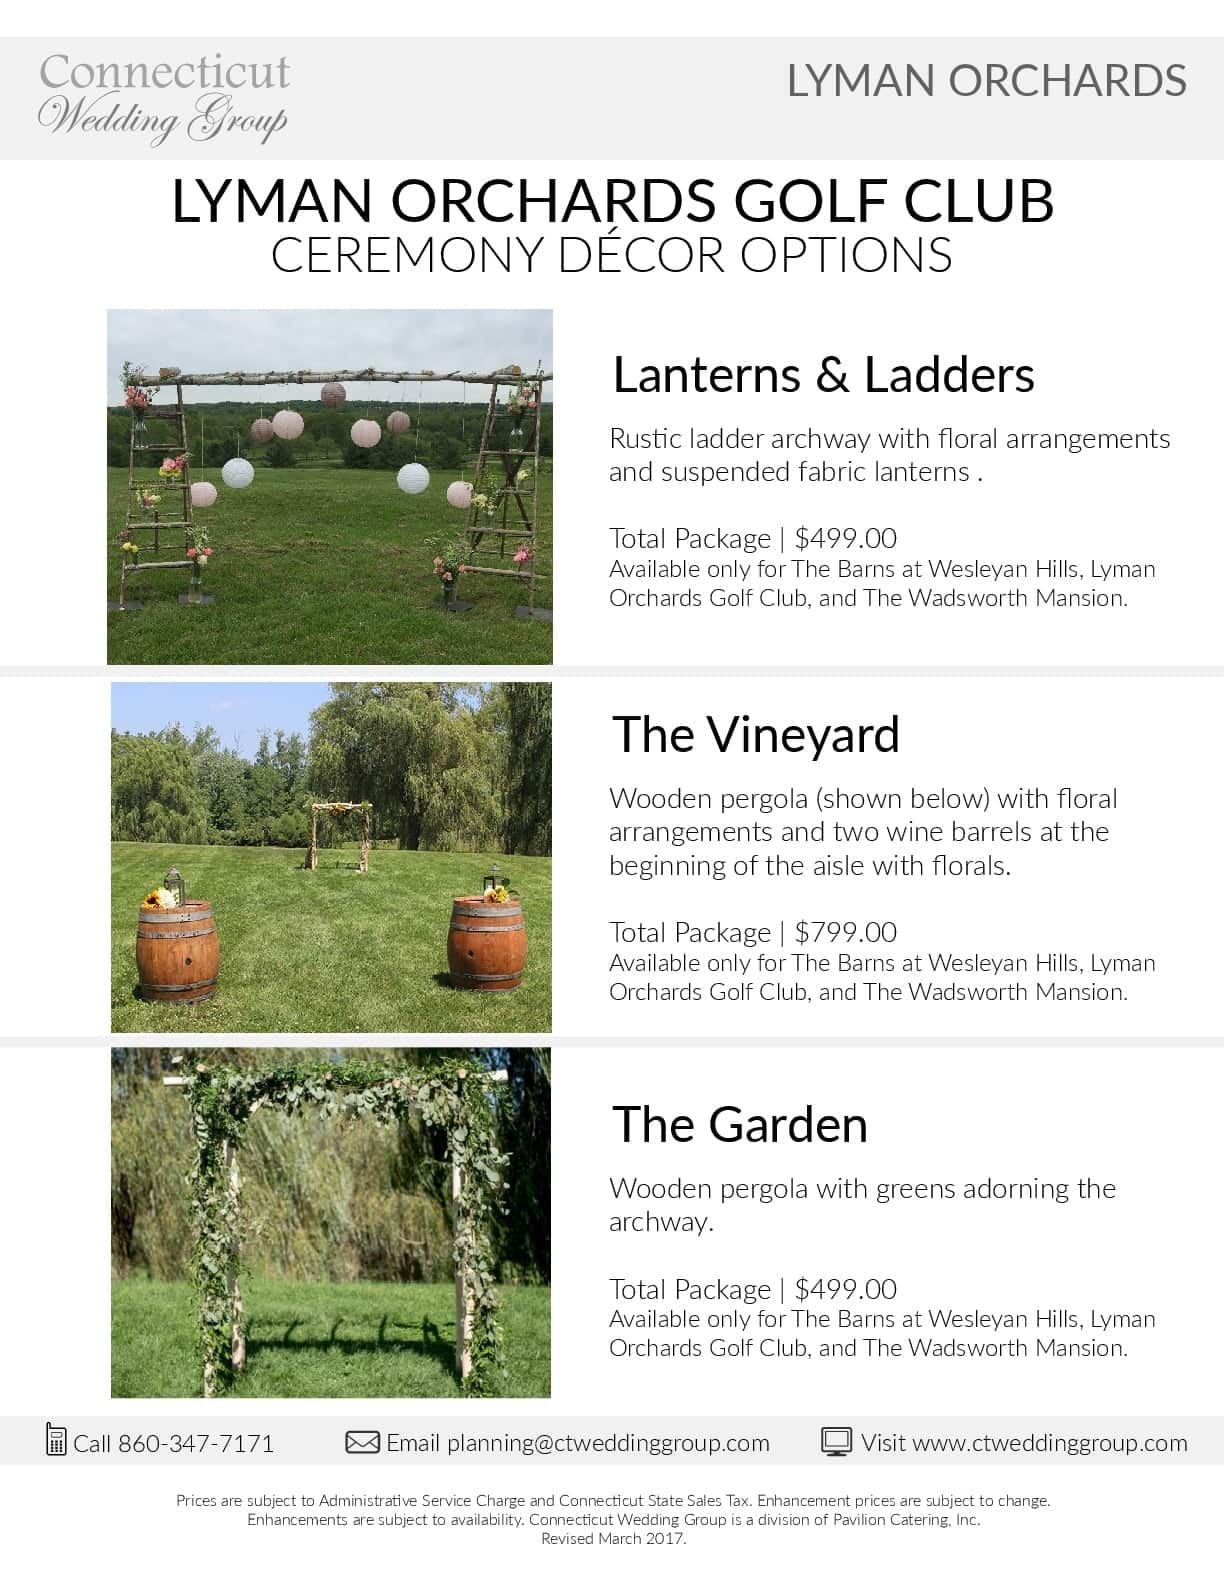 117_15317_Lyman-Orchards-Golf-Club-Ceremony-Decor-Packages_2017-001-min